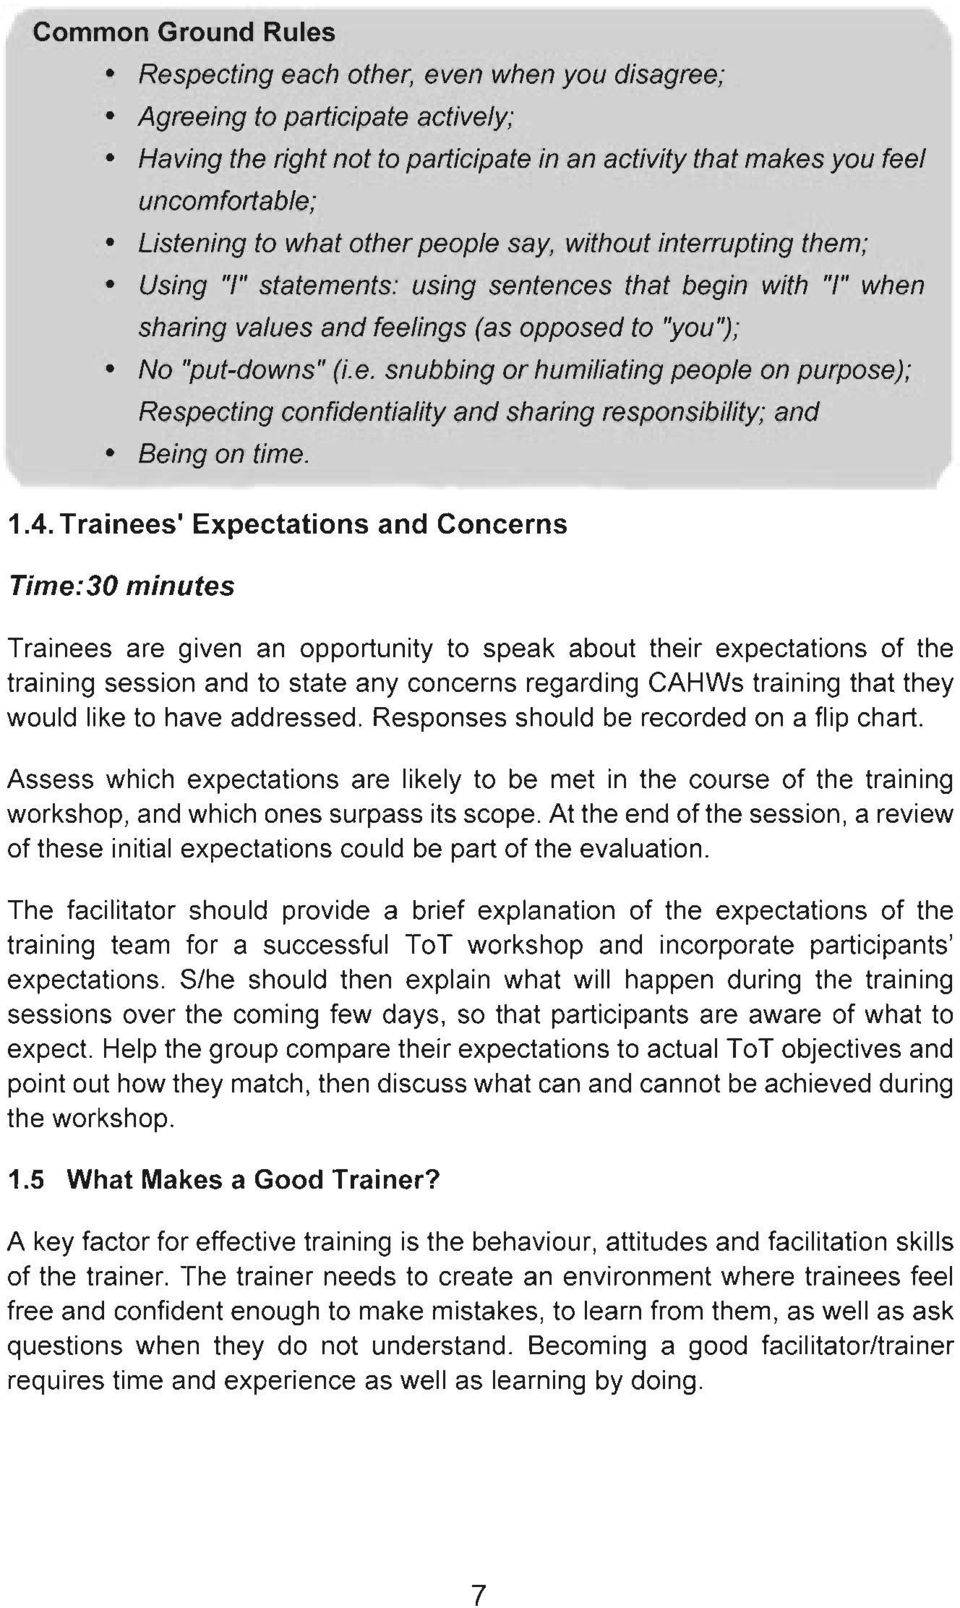 1.4. Trainees' Expectations and Concerns Time:30 minutes Trainees are given an opportunity to speak about their expectations of the training session and to state any concerns regarding CAHWs training